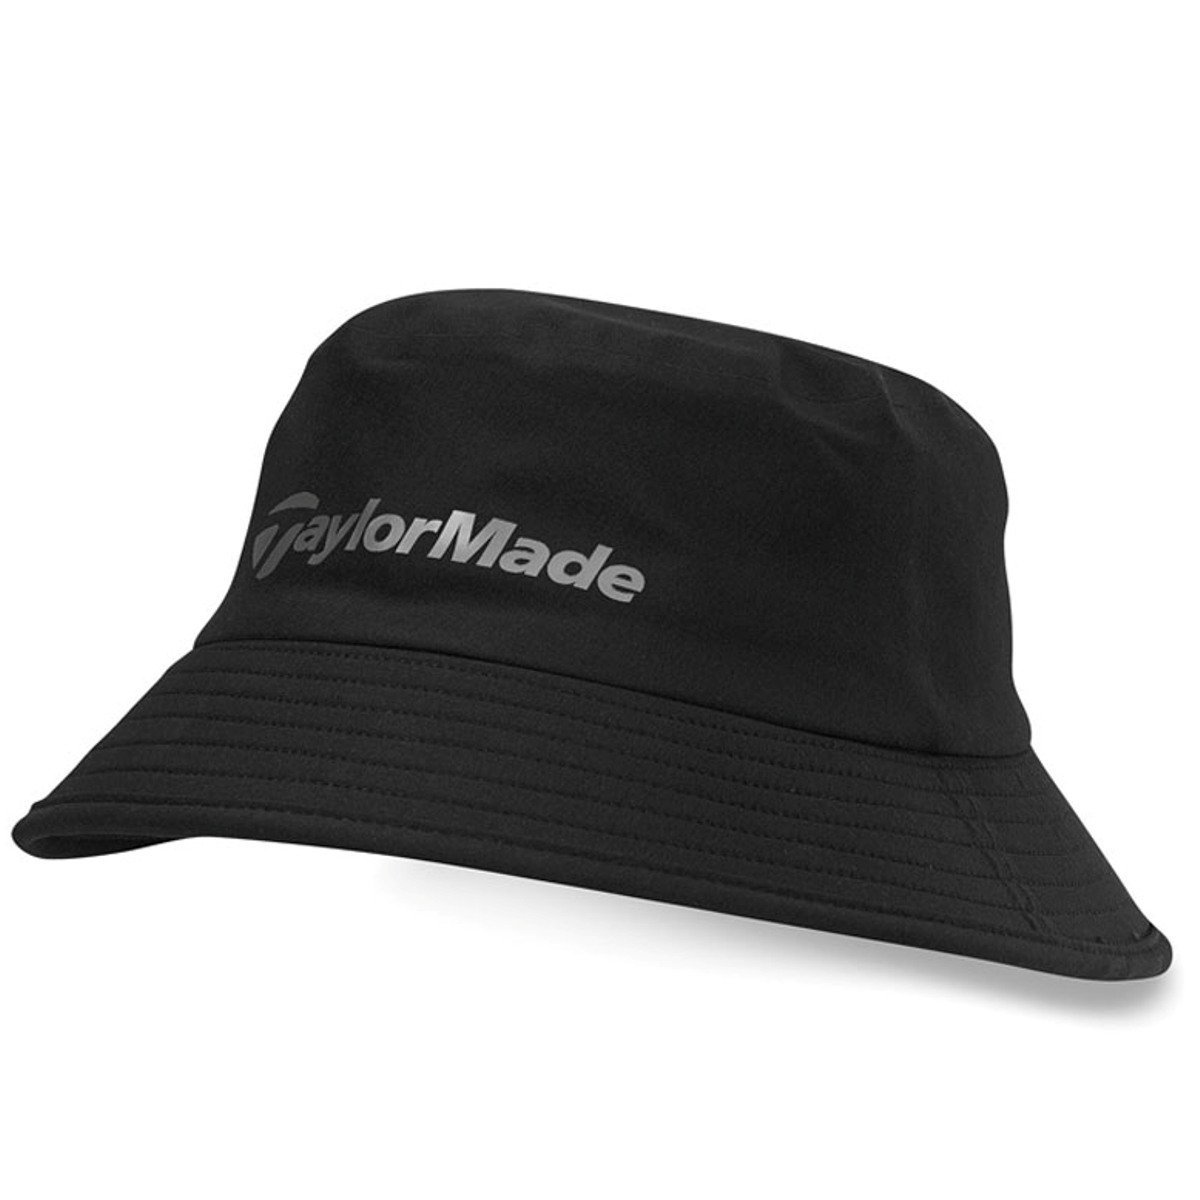 733efcafe Buy TaylorMade Storm Bucket Hat in Cheap Price on Alibaba.com